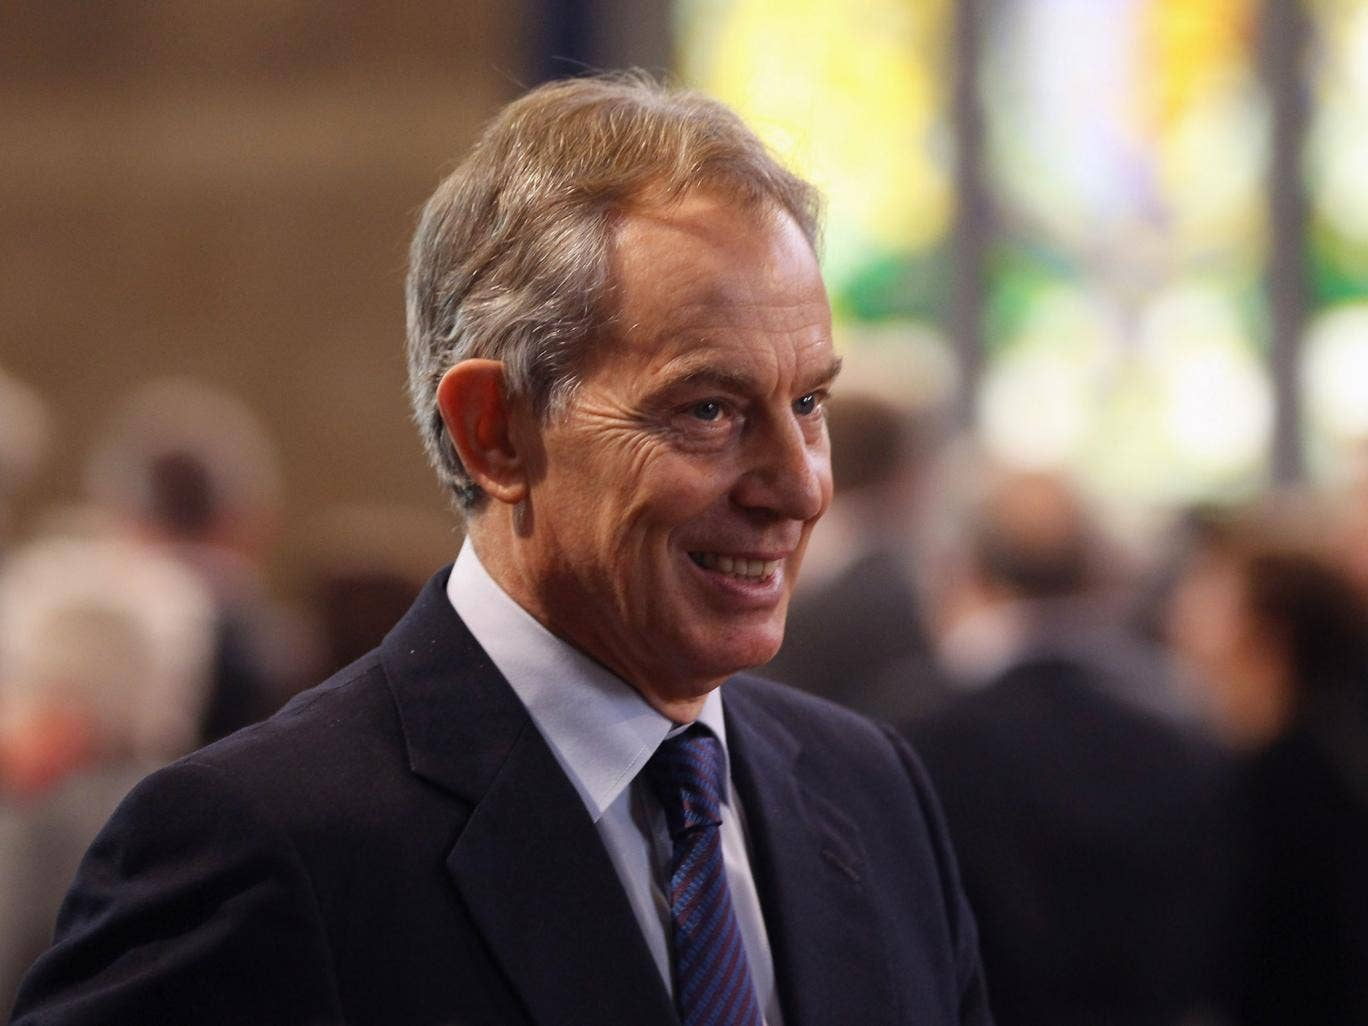 """Tony Blair has launched an attack on the """"problem within Islam"""" in the wake of the brutal murder of Drummer Lee Rigby in Woolwich at the hands of Islamist extremists."""